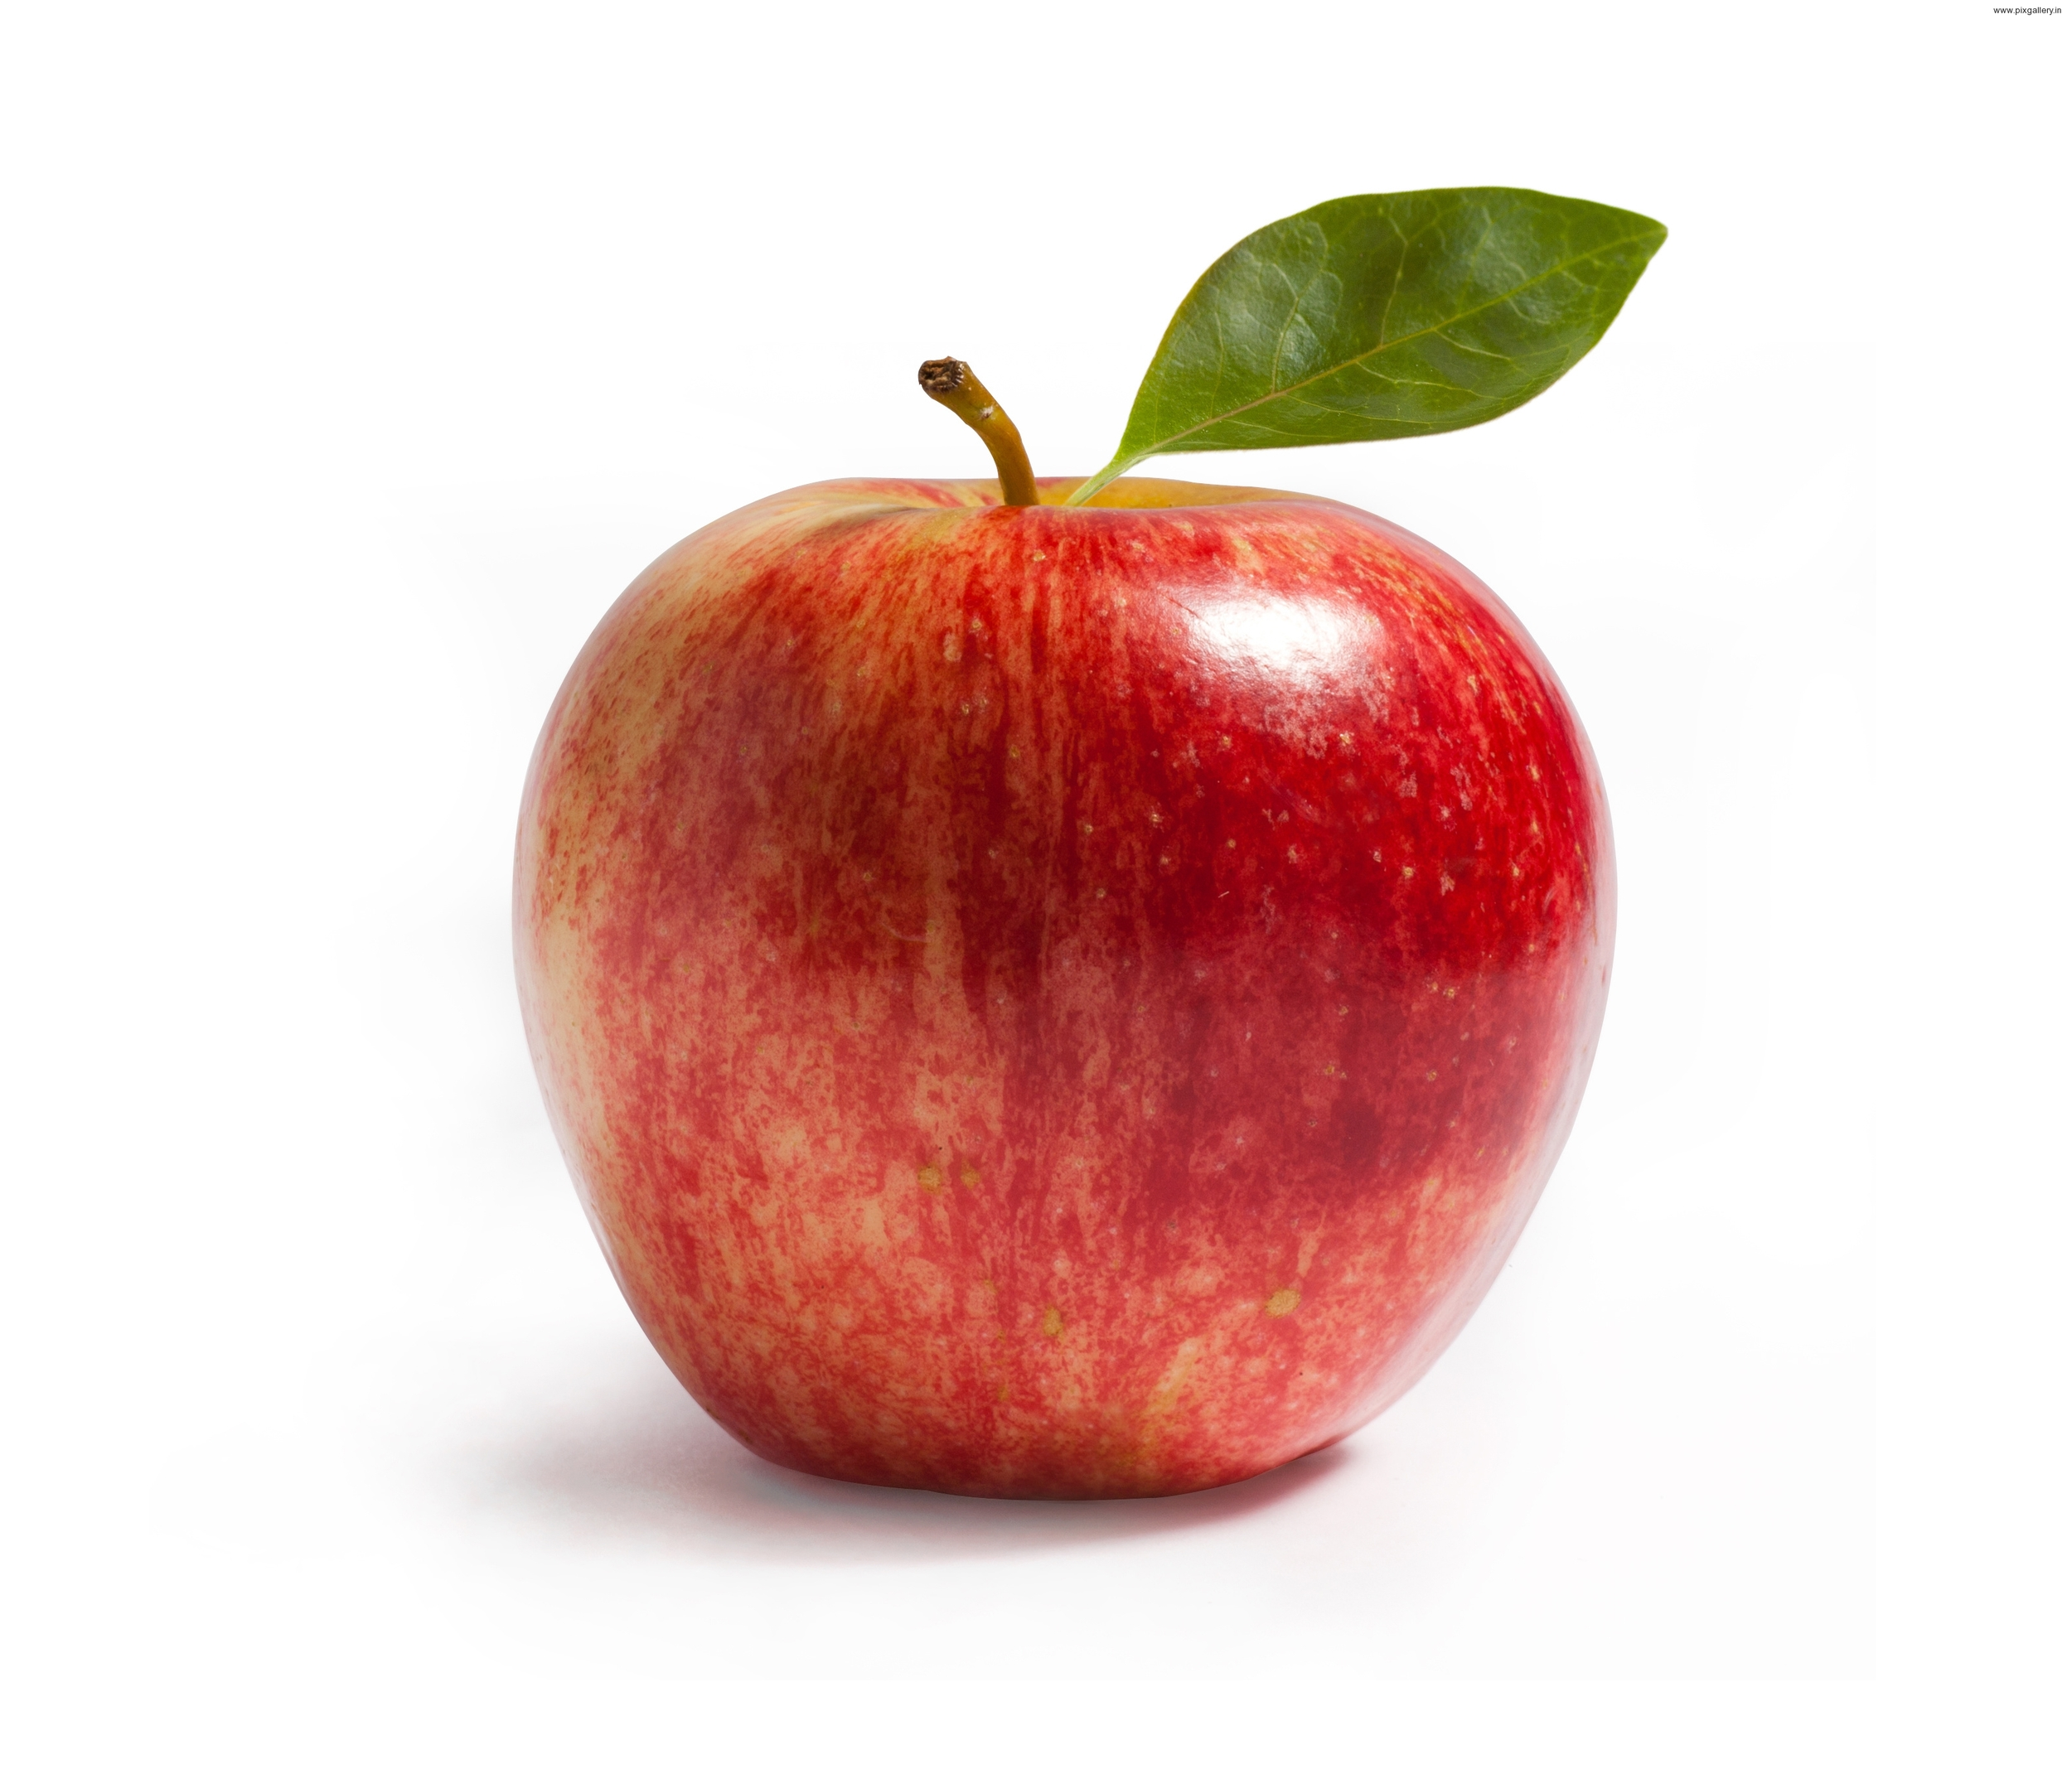 Apples are a great healthy choice for a snack!